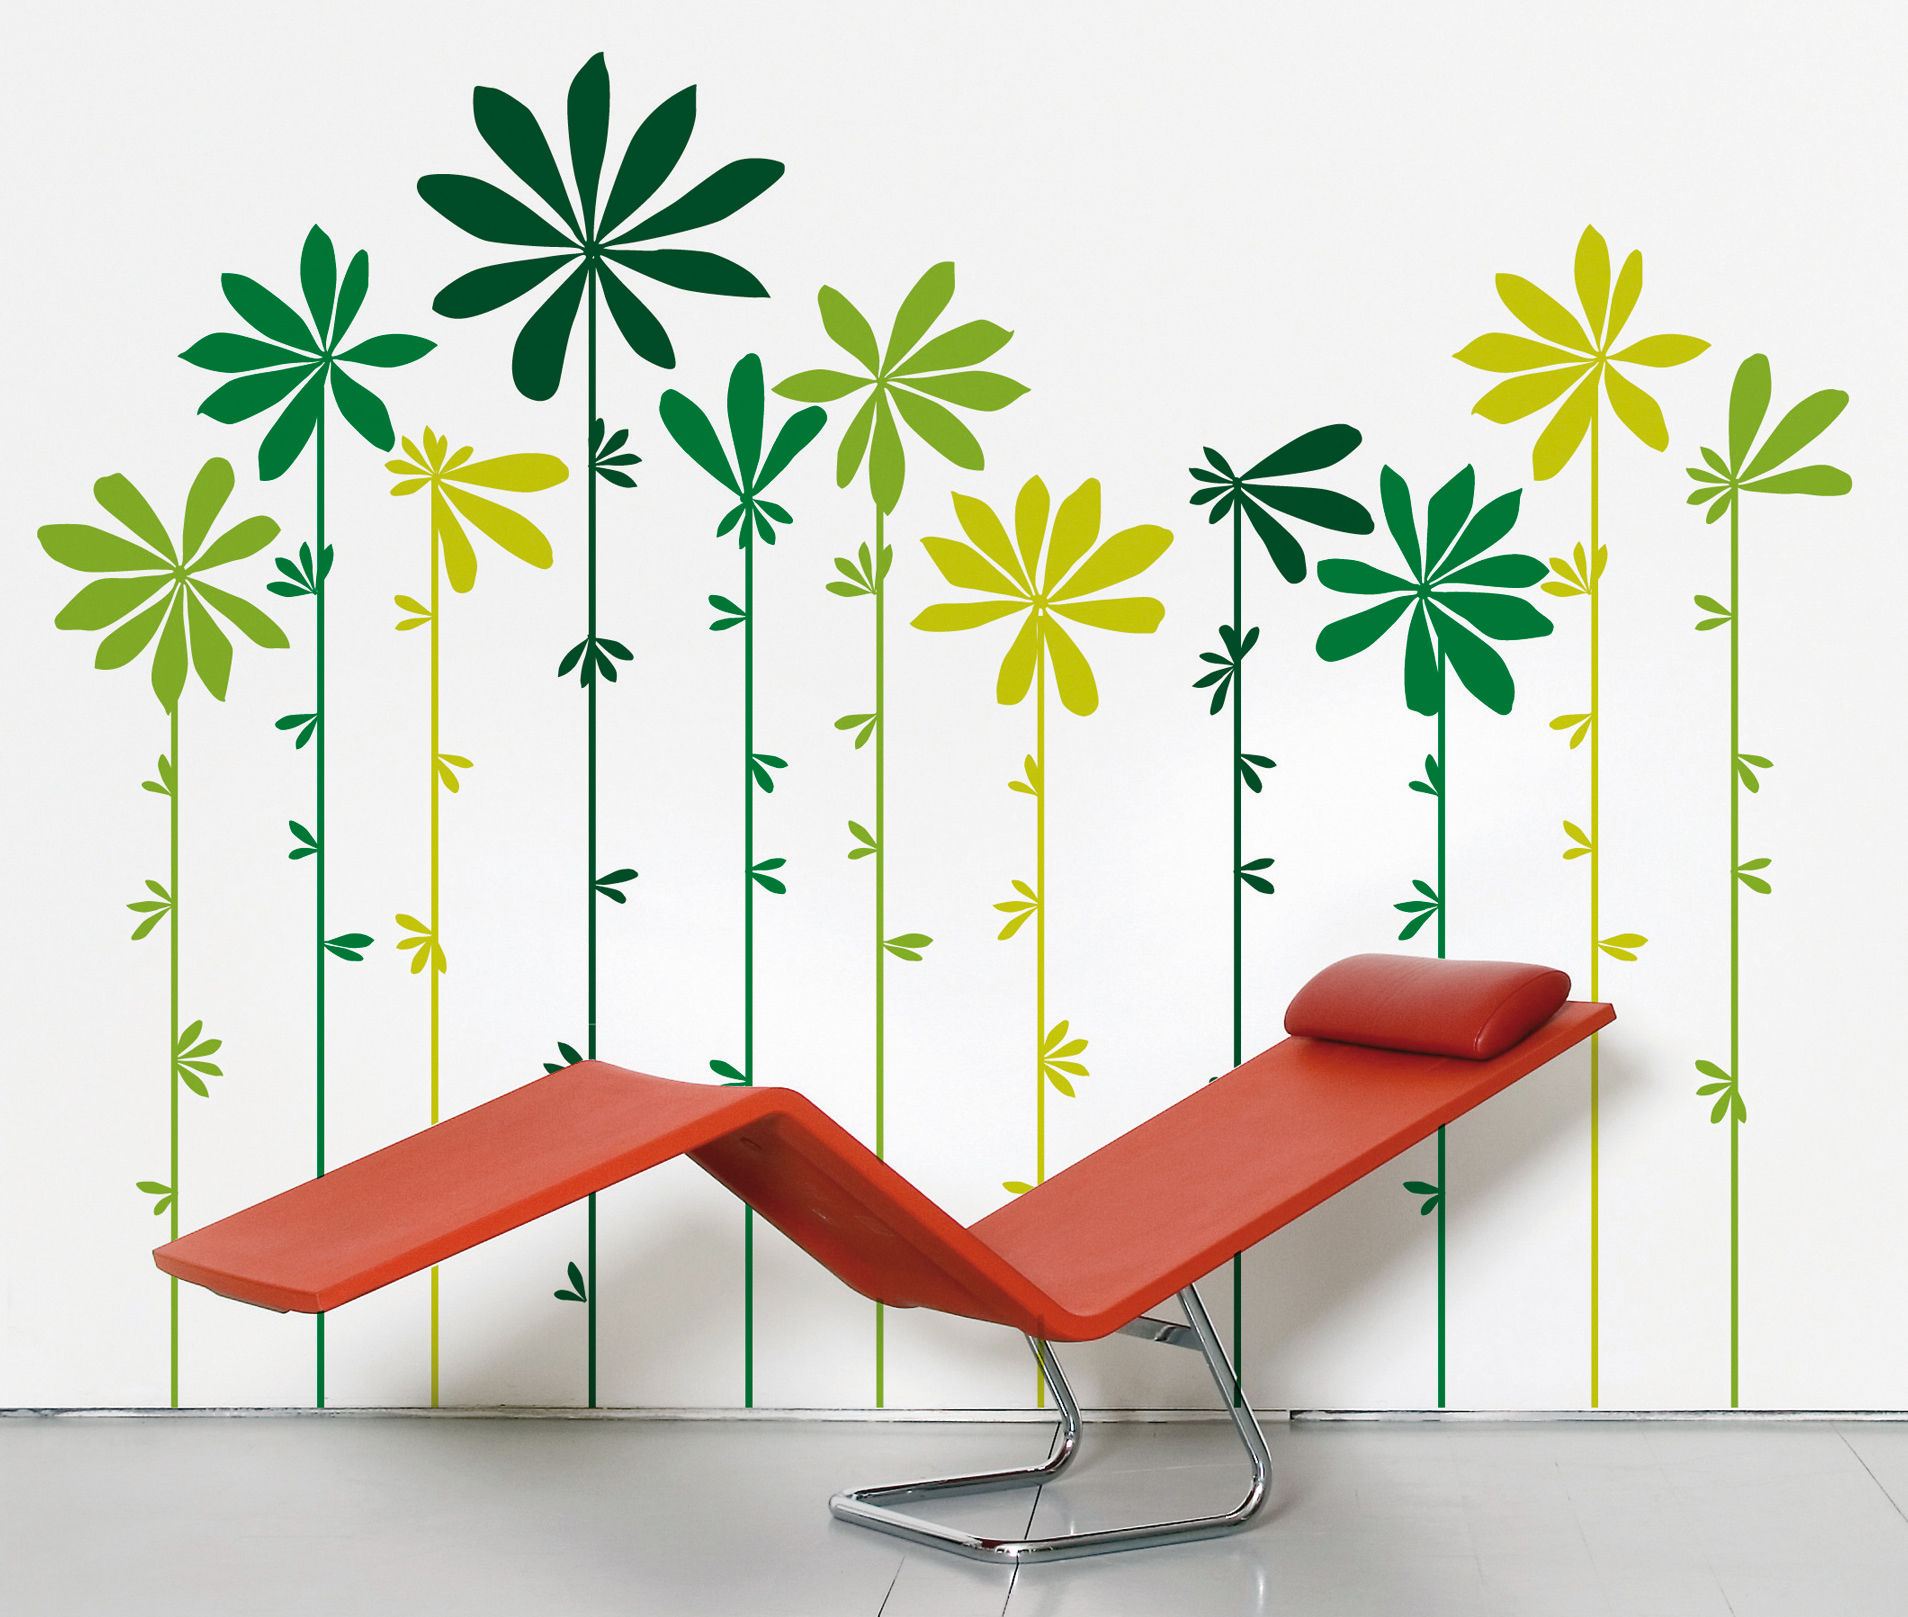 Decoration - Wallpaper & Wall Stickers - Tournesol Green Sticker by Domestic - Green - Vinal